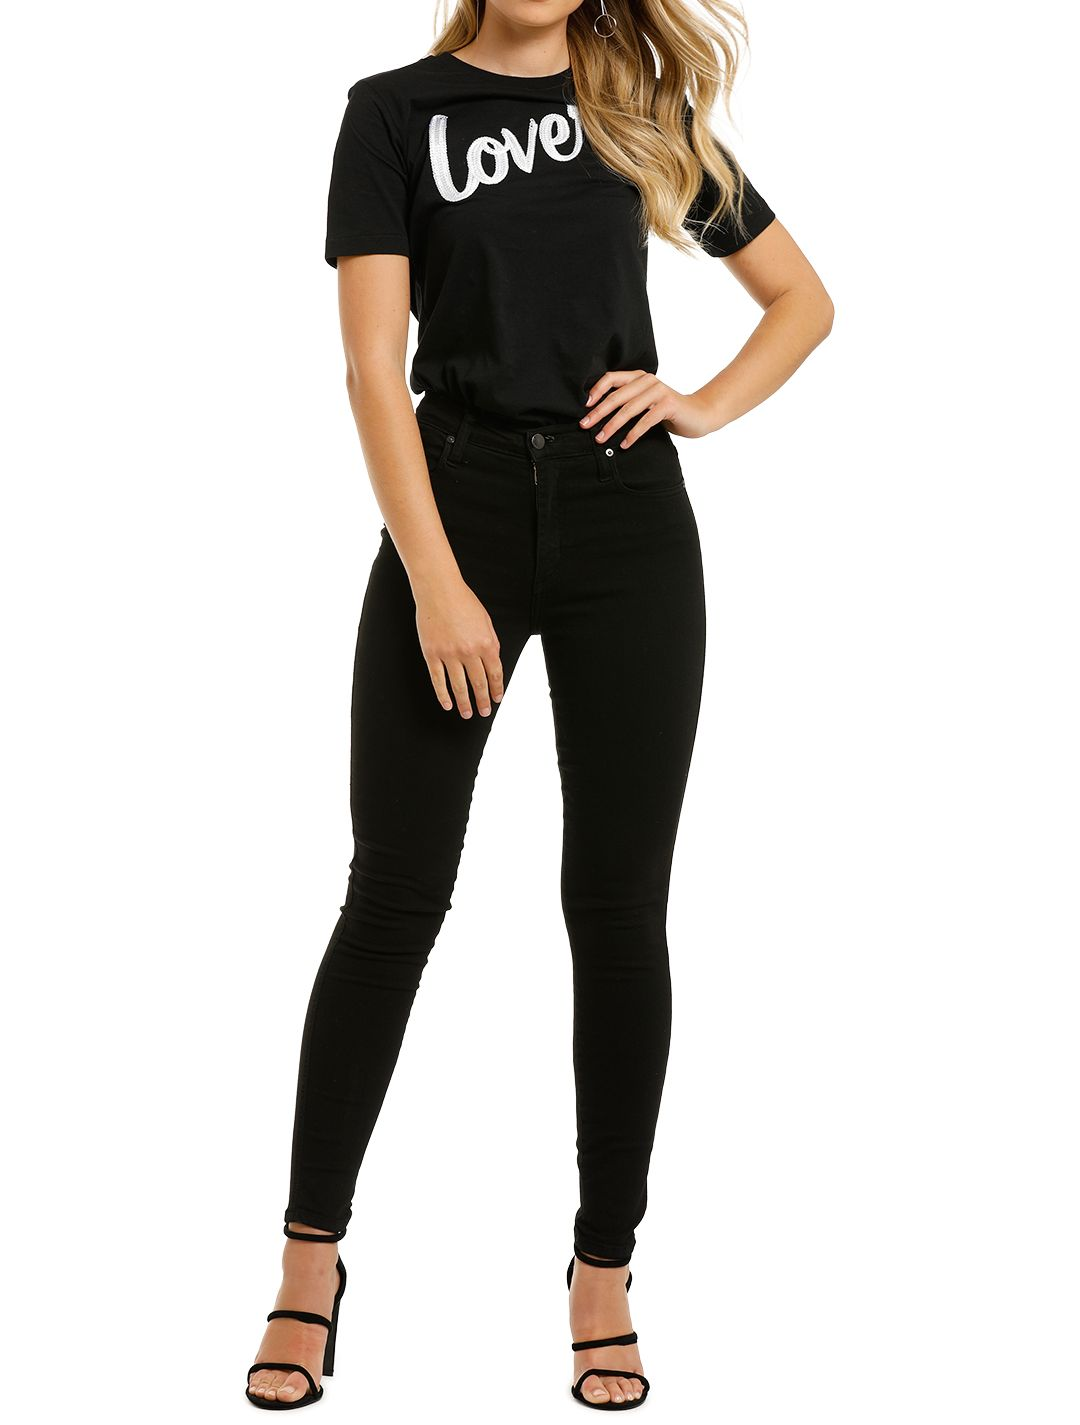 Lover-Signature-Tee-Black-Front